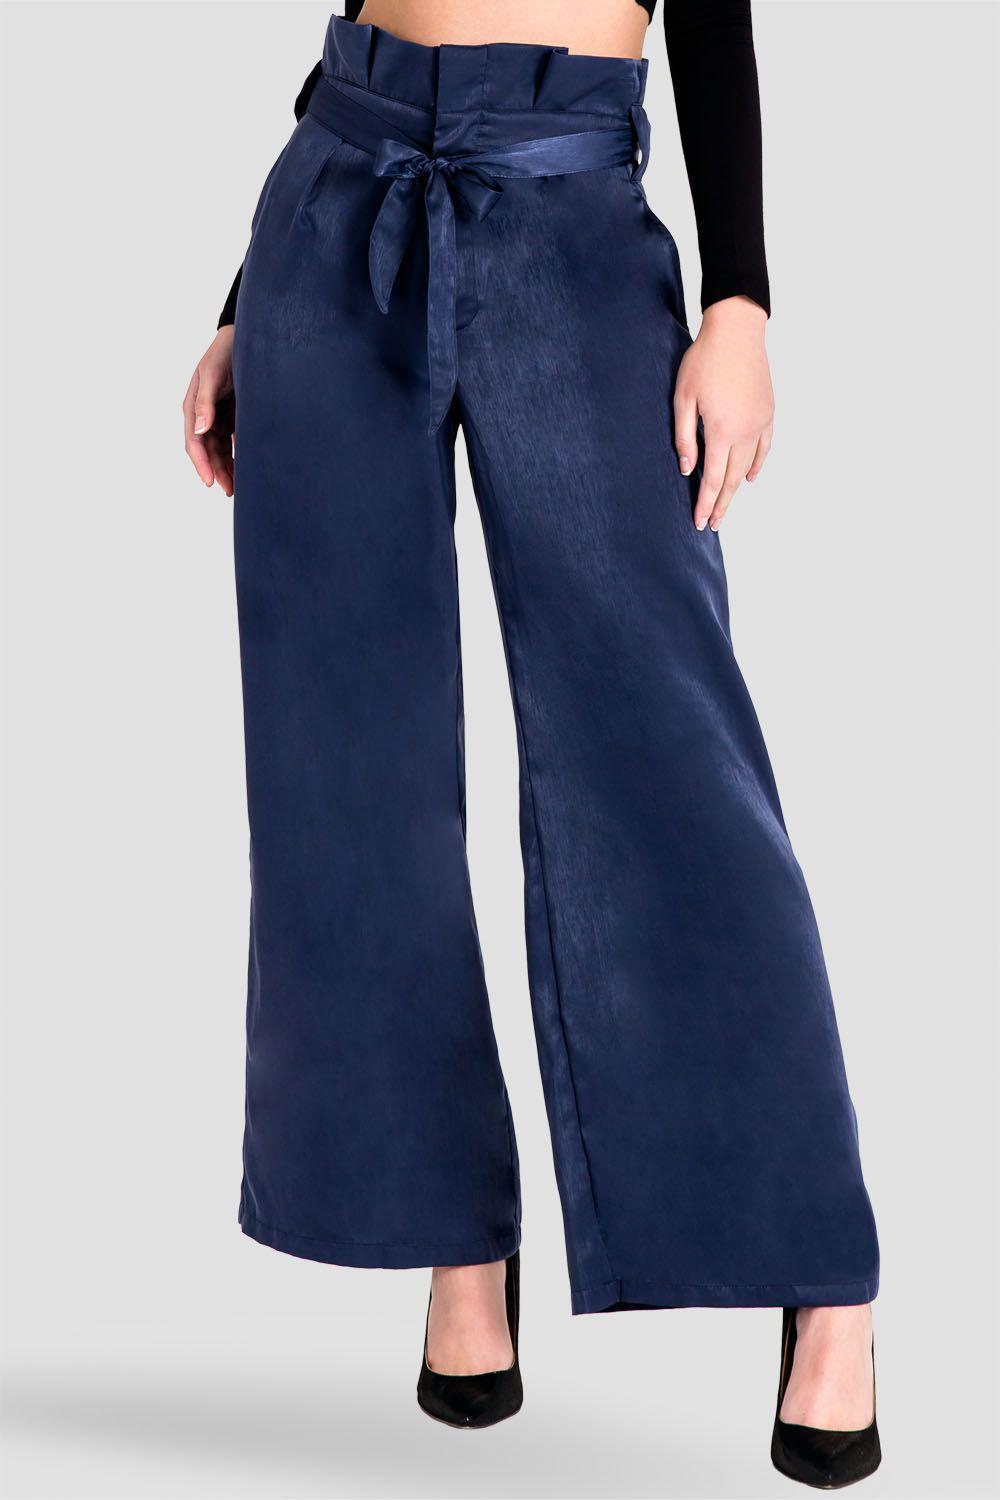 Sue Paper Bag Waist Palazzo Pants - Midnight Blue Washed Satin